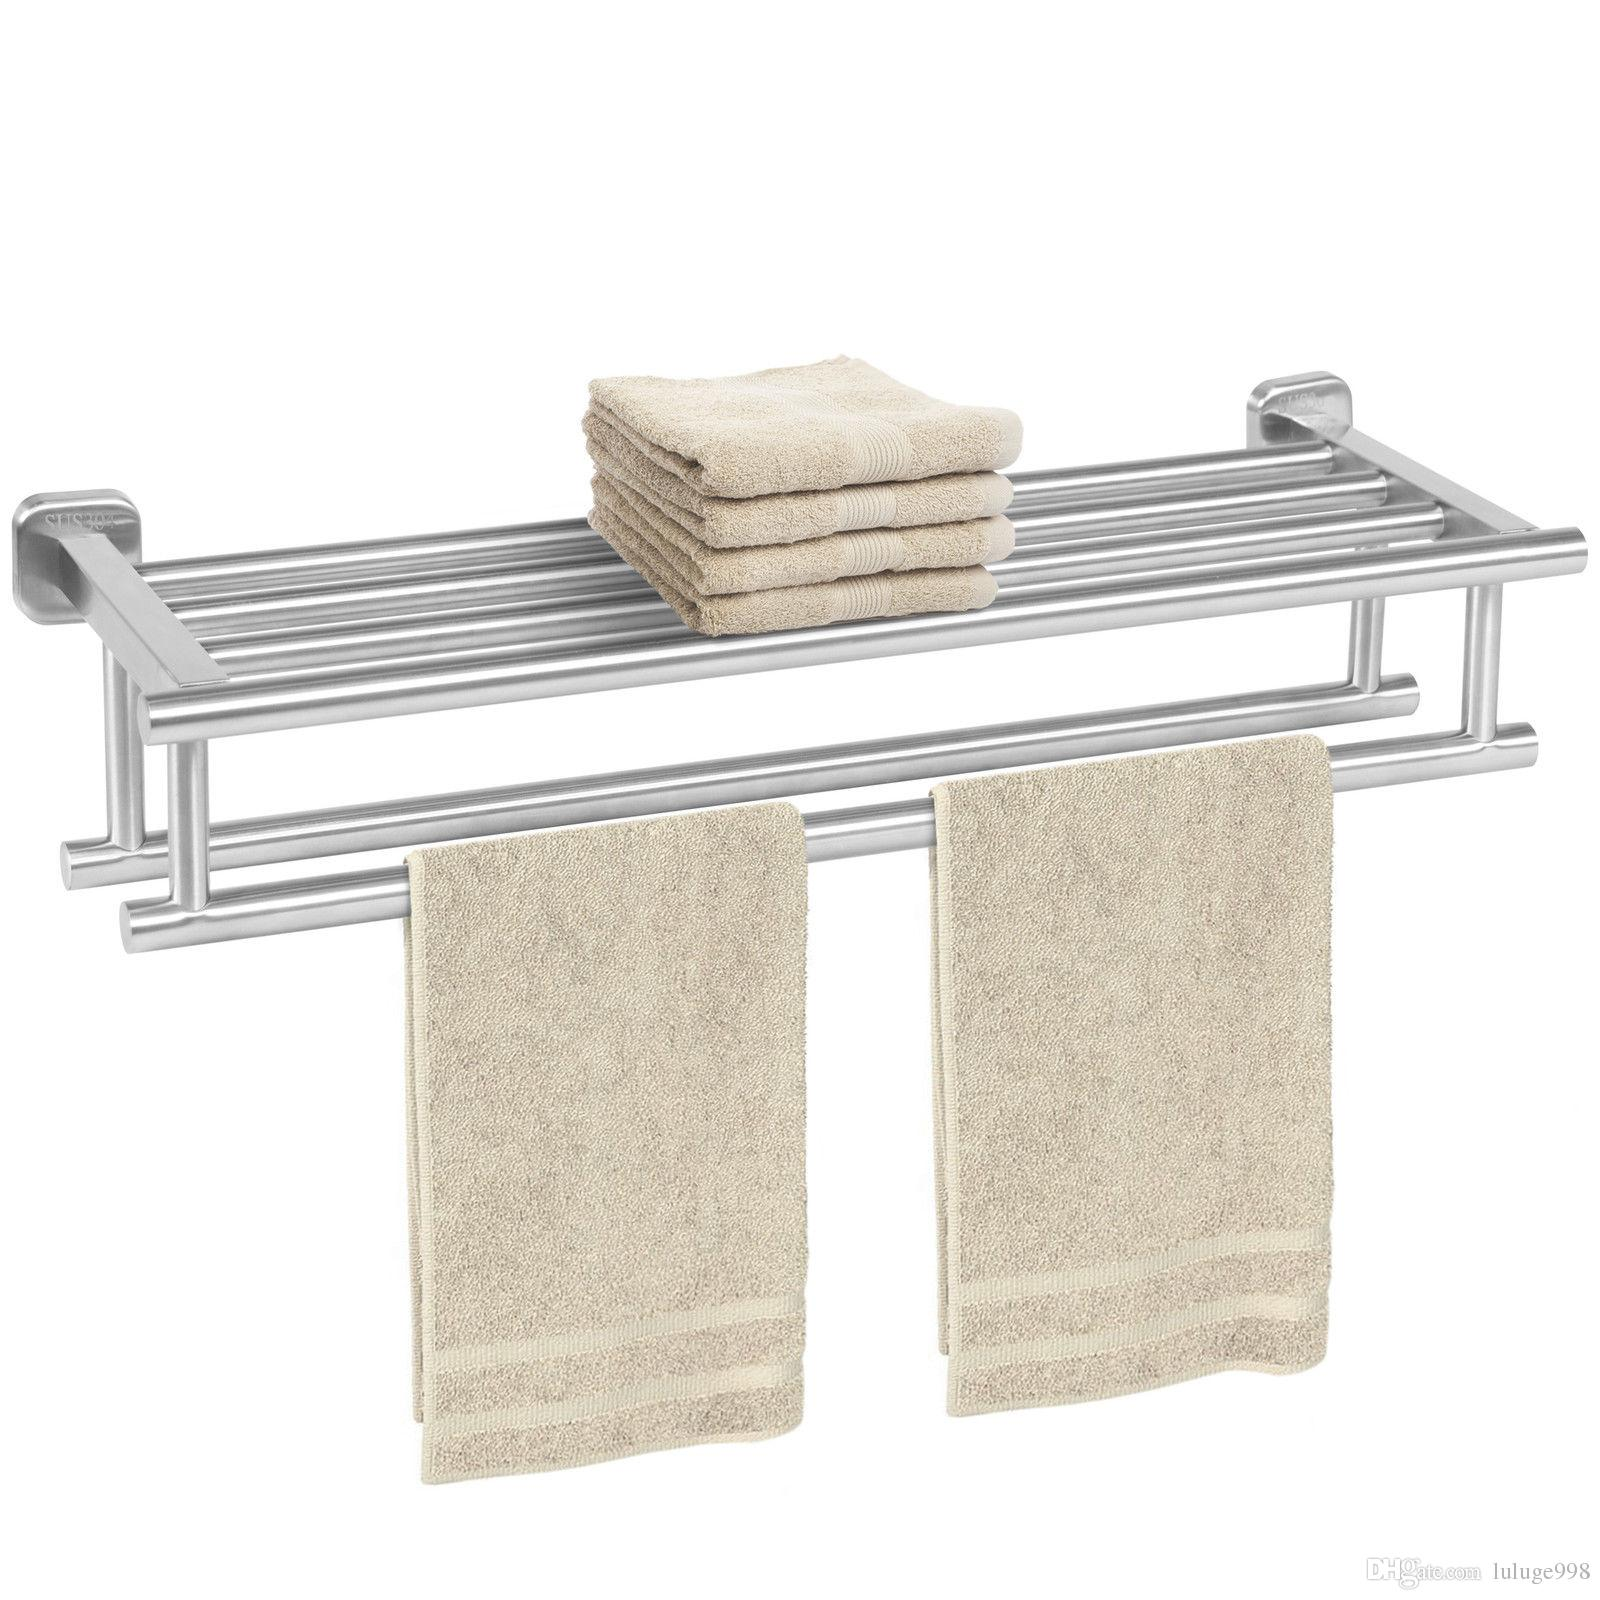 Stainless Steel Double Towel Rack Wall Mount Bathroom Shelf Bar Rail